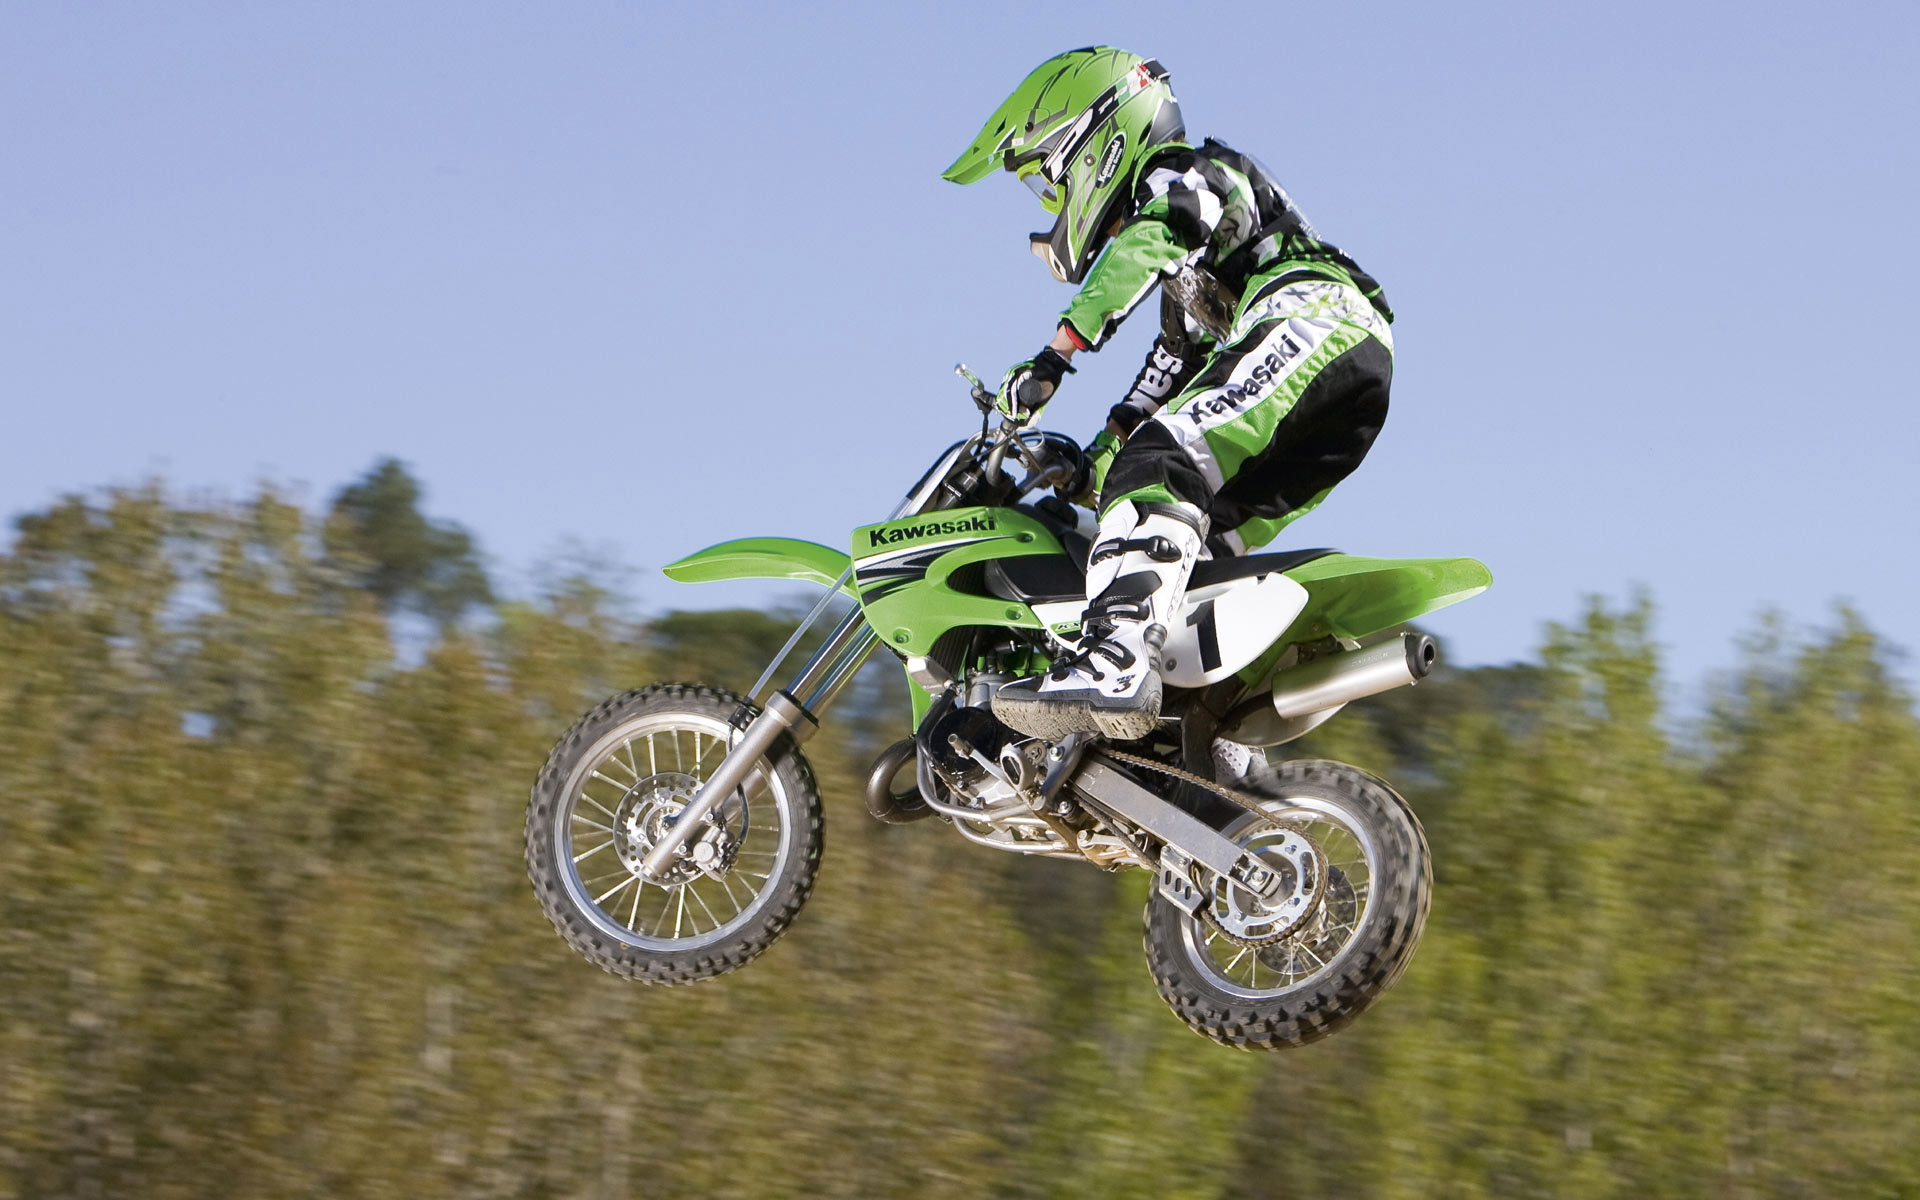 Motocross Wallpapers Photos And Desktop Backgrounds Up To 8K